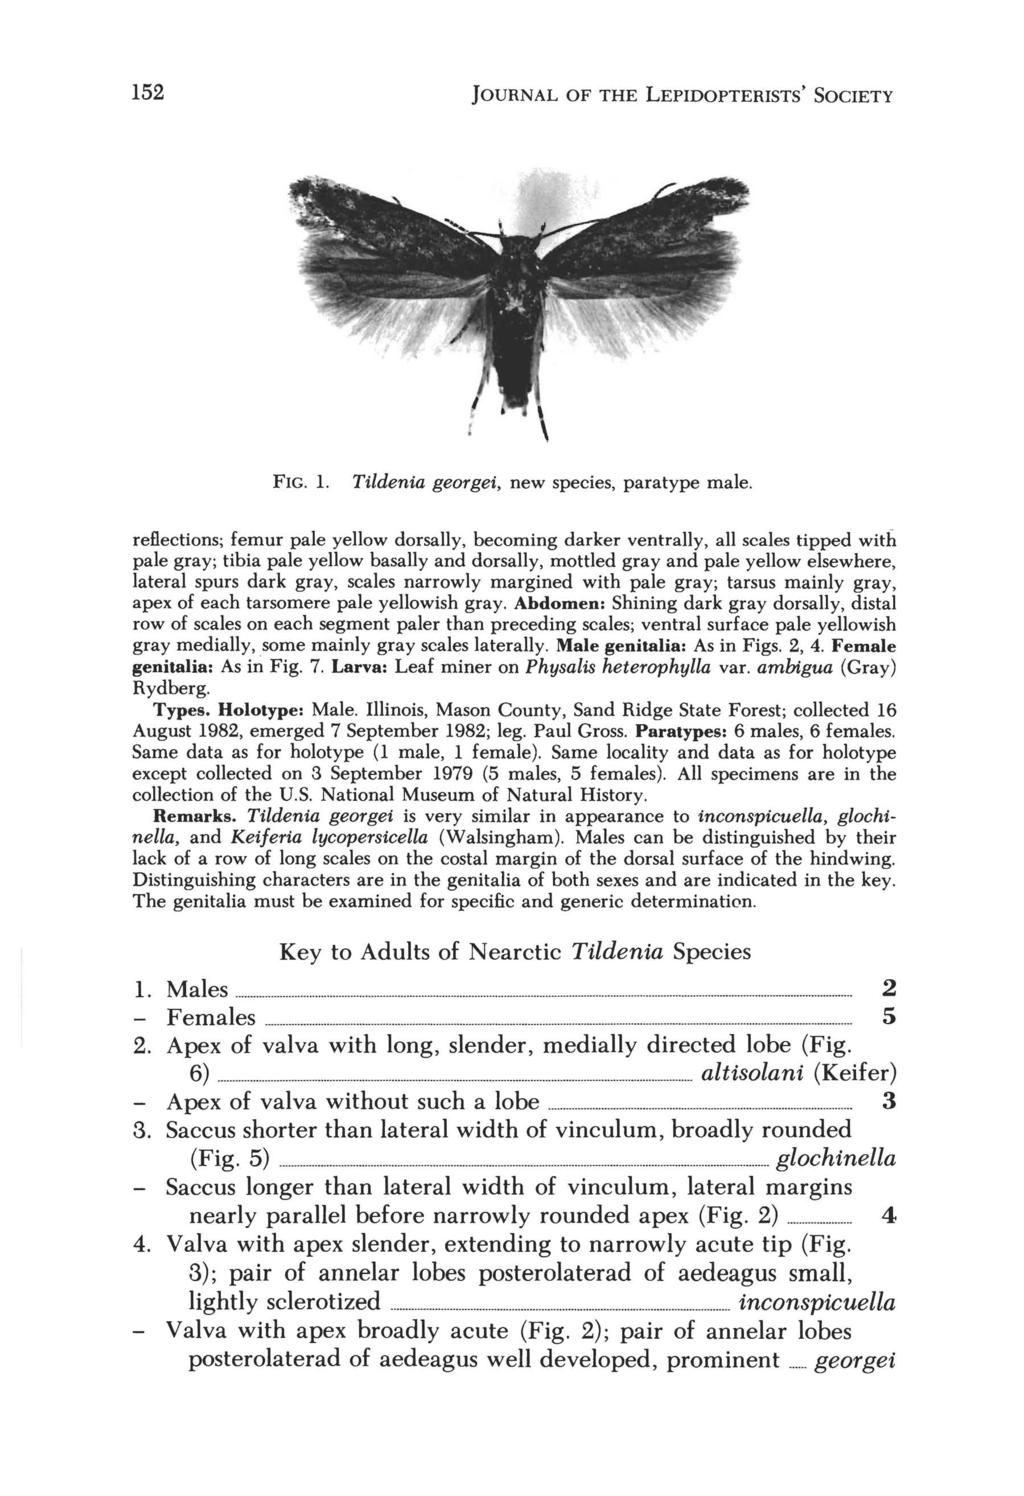 152 JOURNAL OF THE LEPIDOPTERISTS' SOCIETY FIG. 1. Tildenia georgei, new species, para type male.